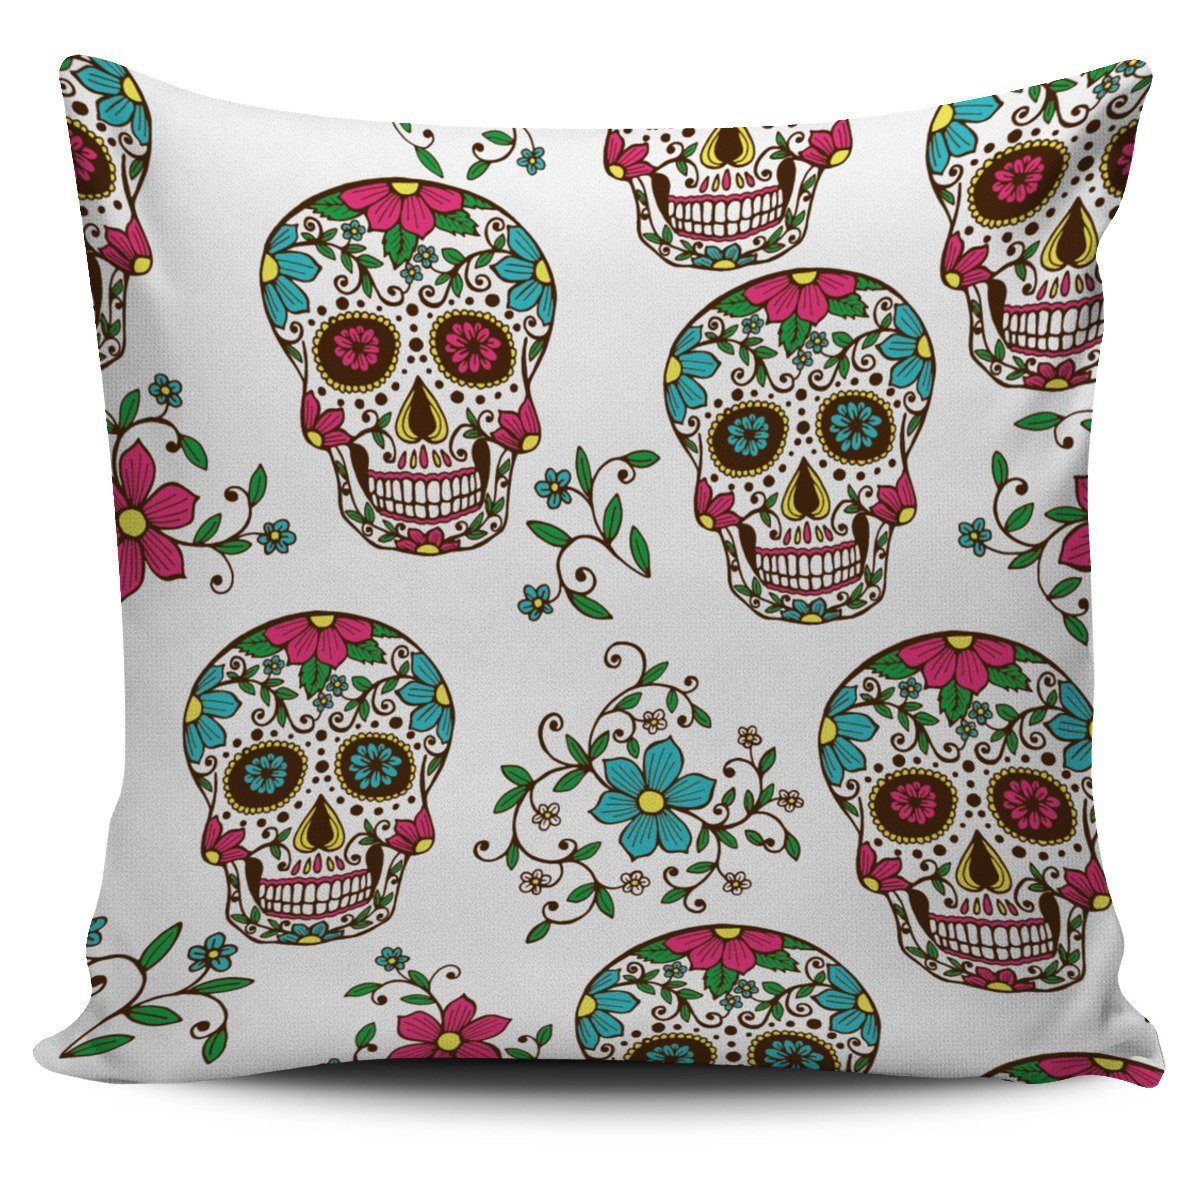 Sugar Skulls Print Pillow Cover